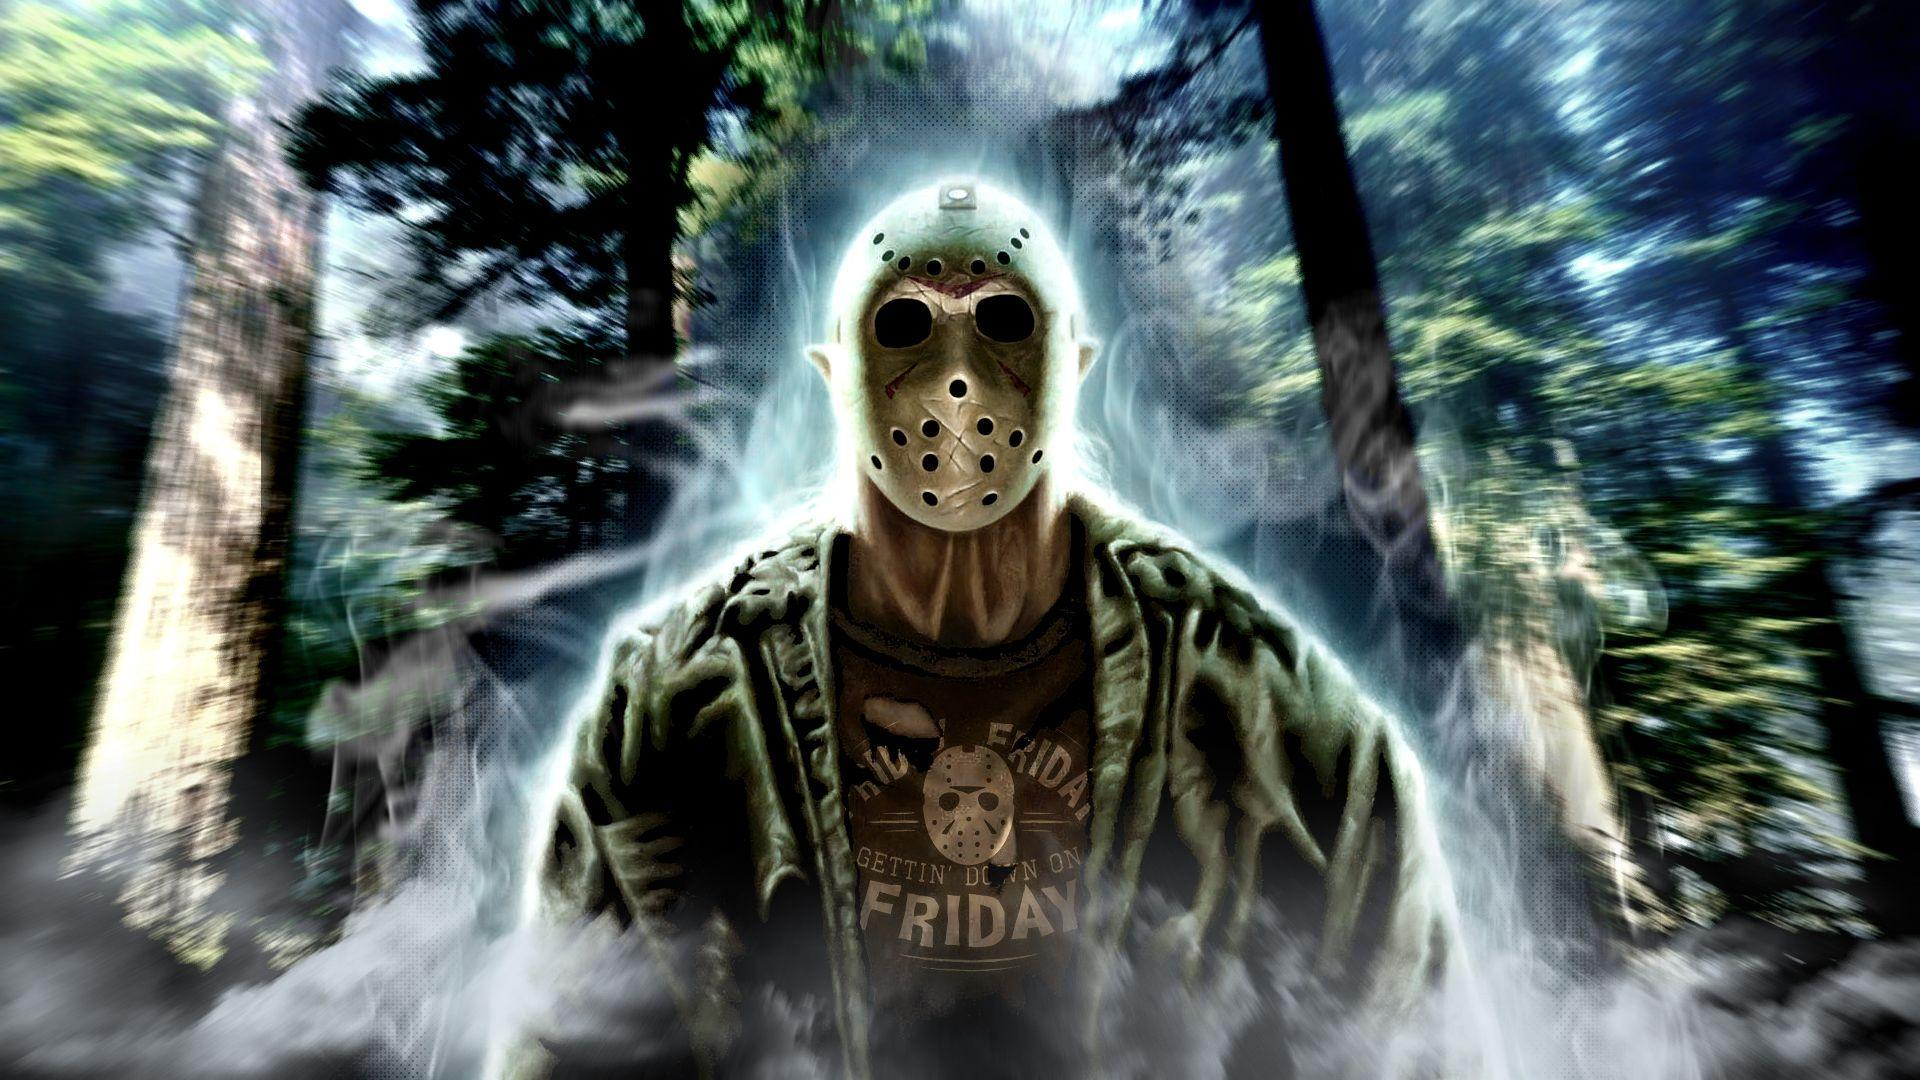 Friday the 13th wallpaper. by Royartandstuff on DeviantArt